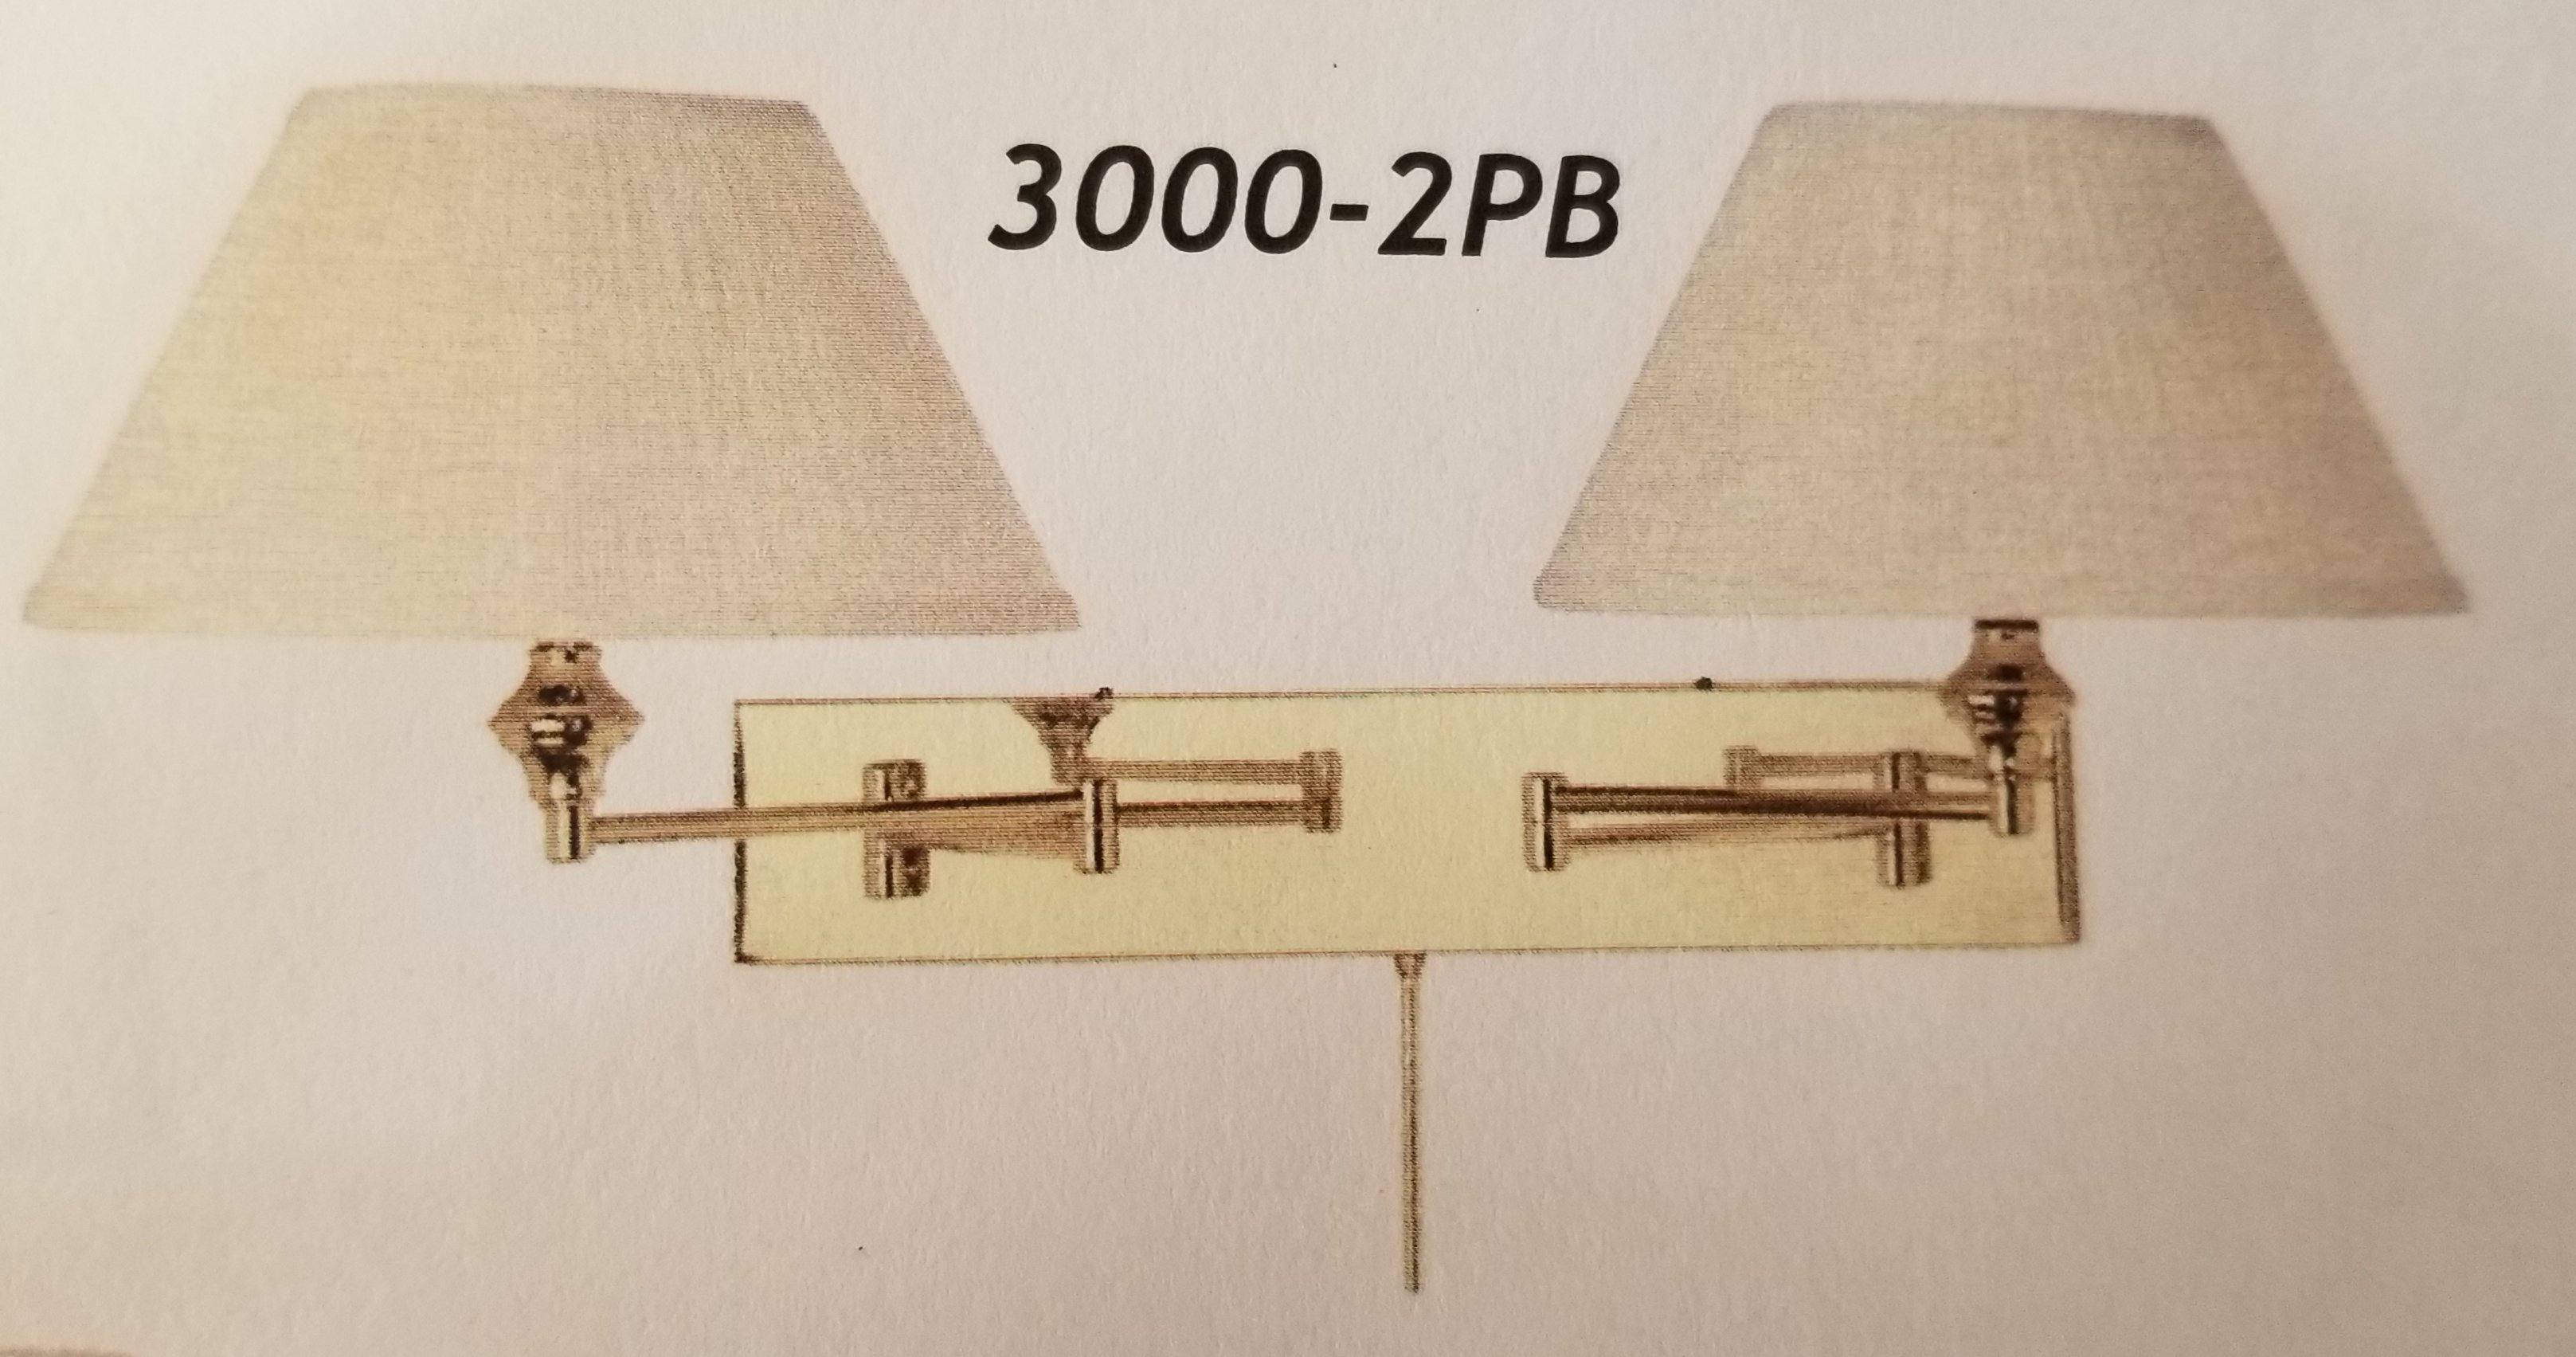 3000-2 Swing Arm Wall Right Made in Canada Available in Antique Brass Brushed Chrome or Black Regular Price $312.99 Blowout Price $219.99